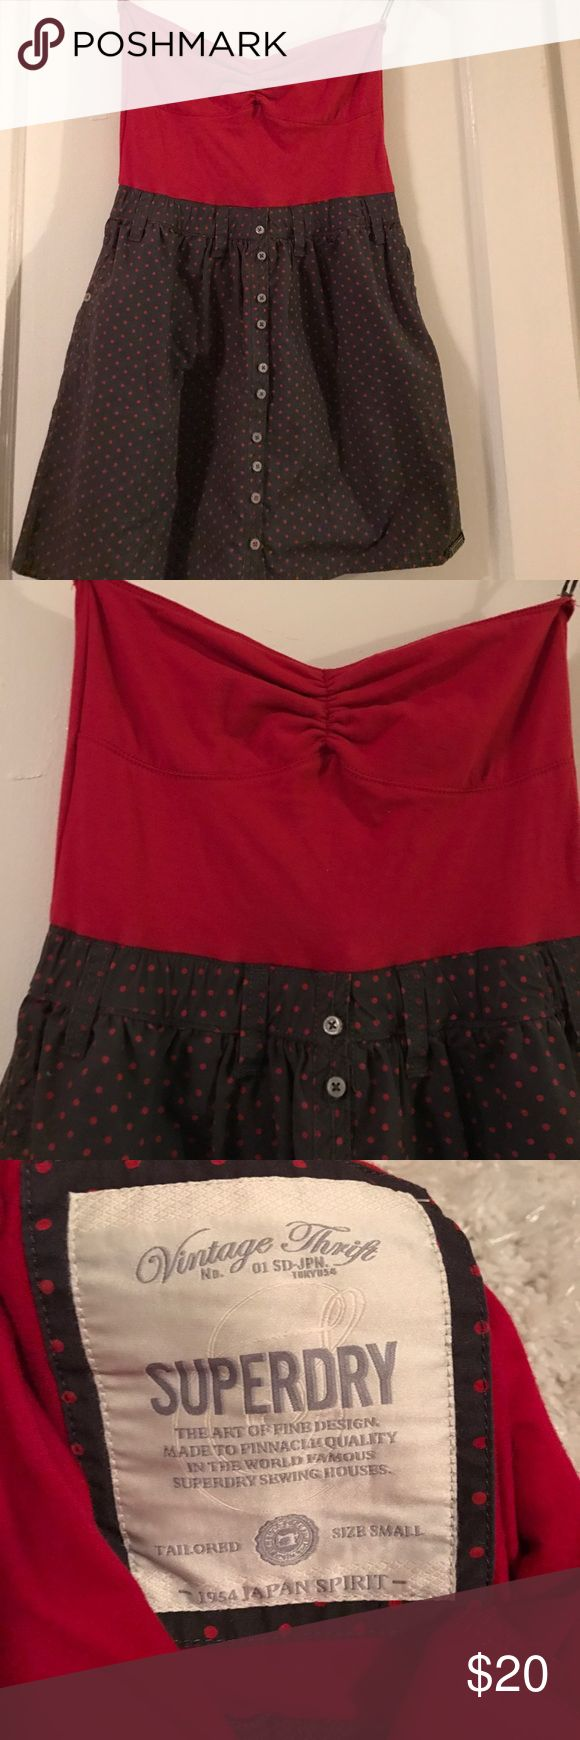 Superdry dress Fun strapless dress with a sweetheart neckline. The top part is a soft red color and the skirt has dark grey/almost brown with polka dots Superdry Dresses Strapless